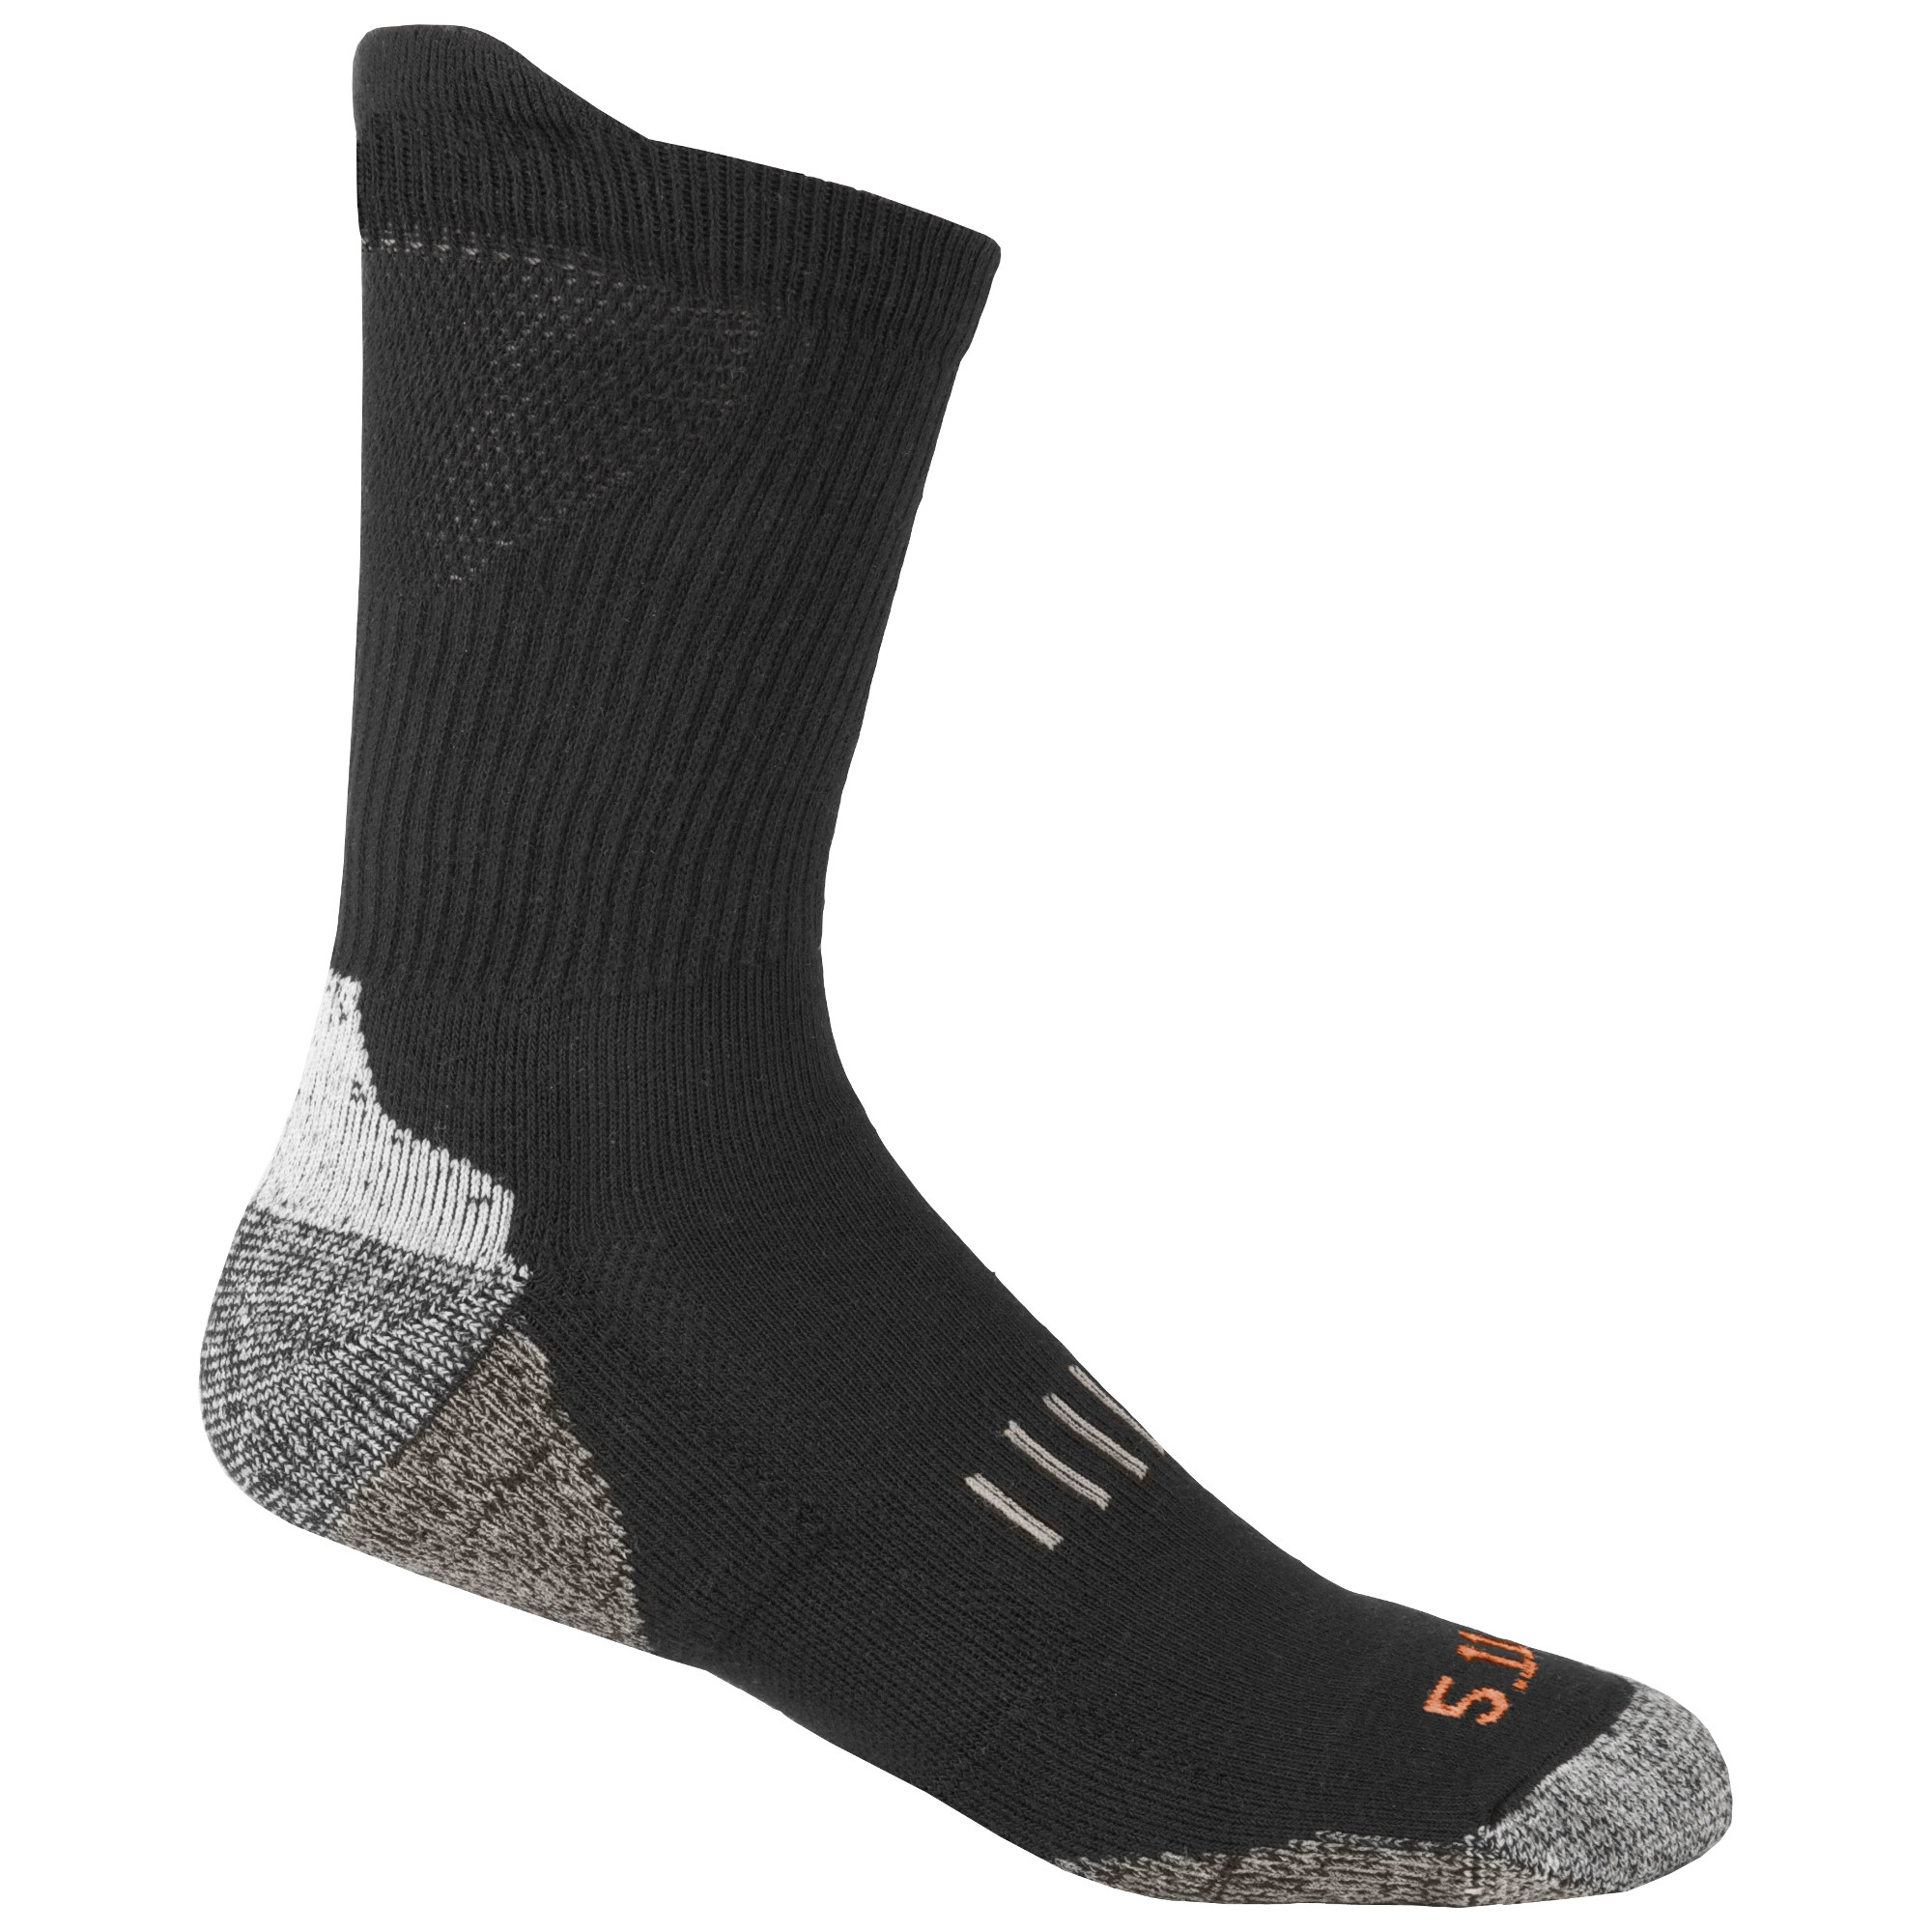 5.11 Mens Year Round Crew Sock Style 10014